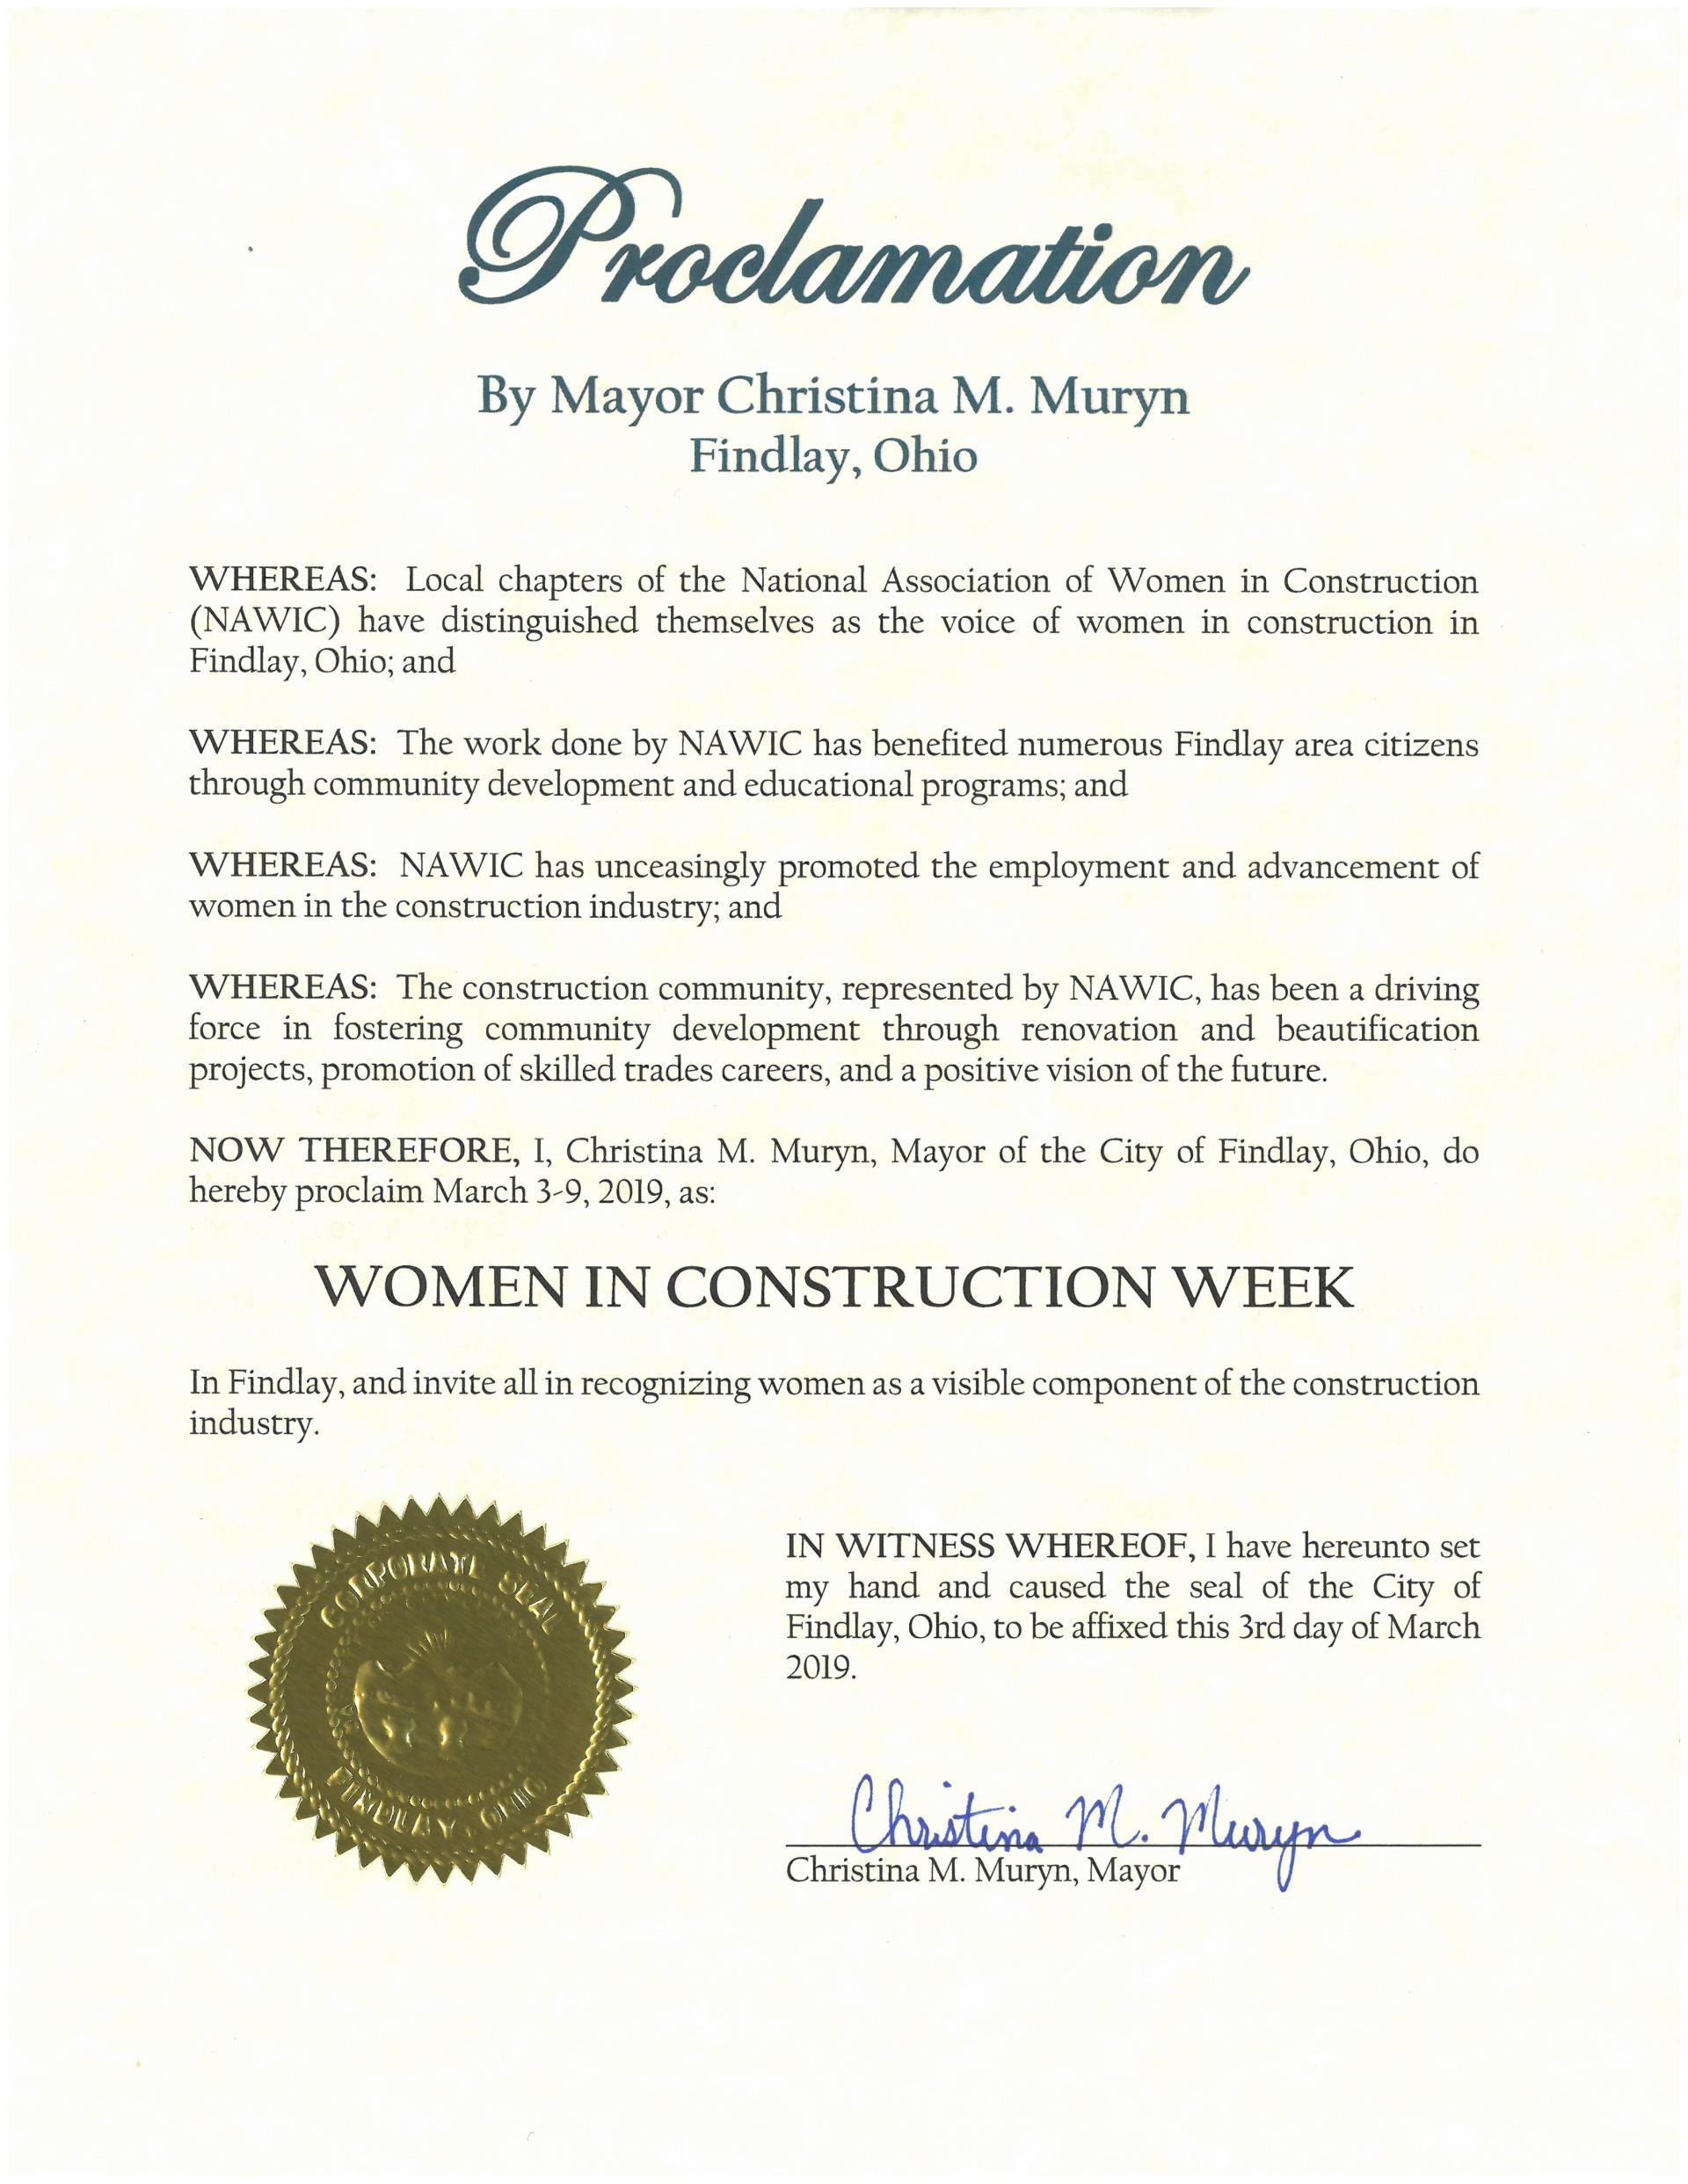 Proclamation-Women in Construction Week